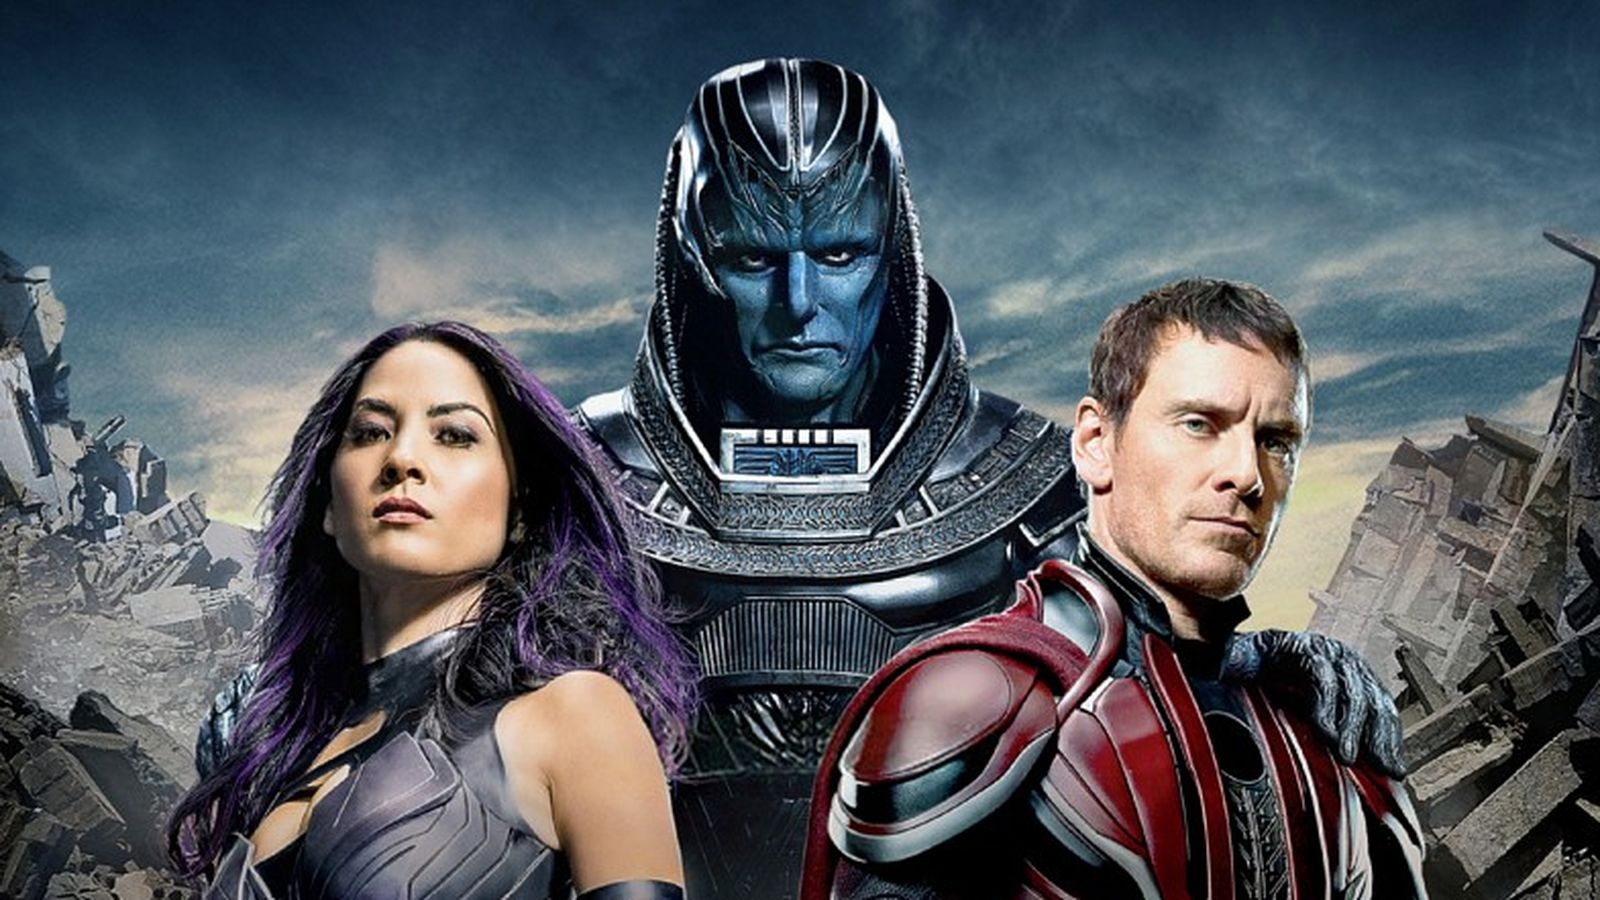 X-Men-Apocalypse-Poster-No-Text.0.0.jpg